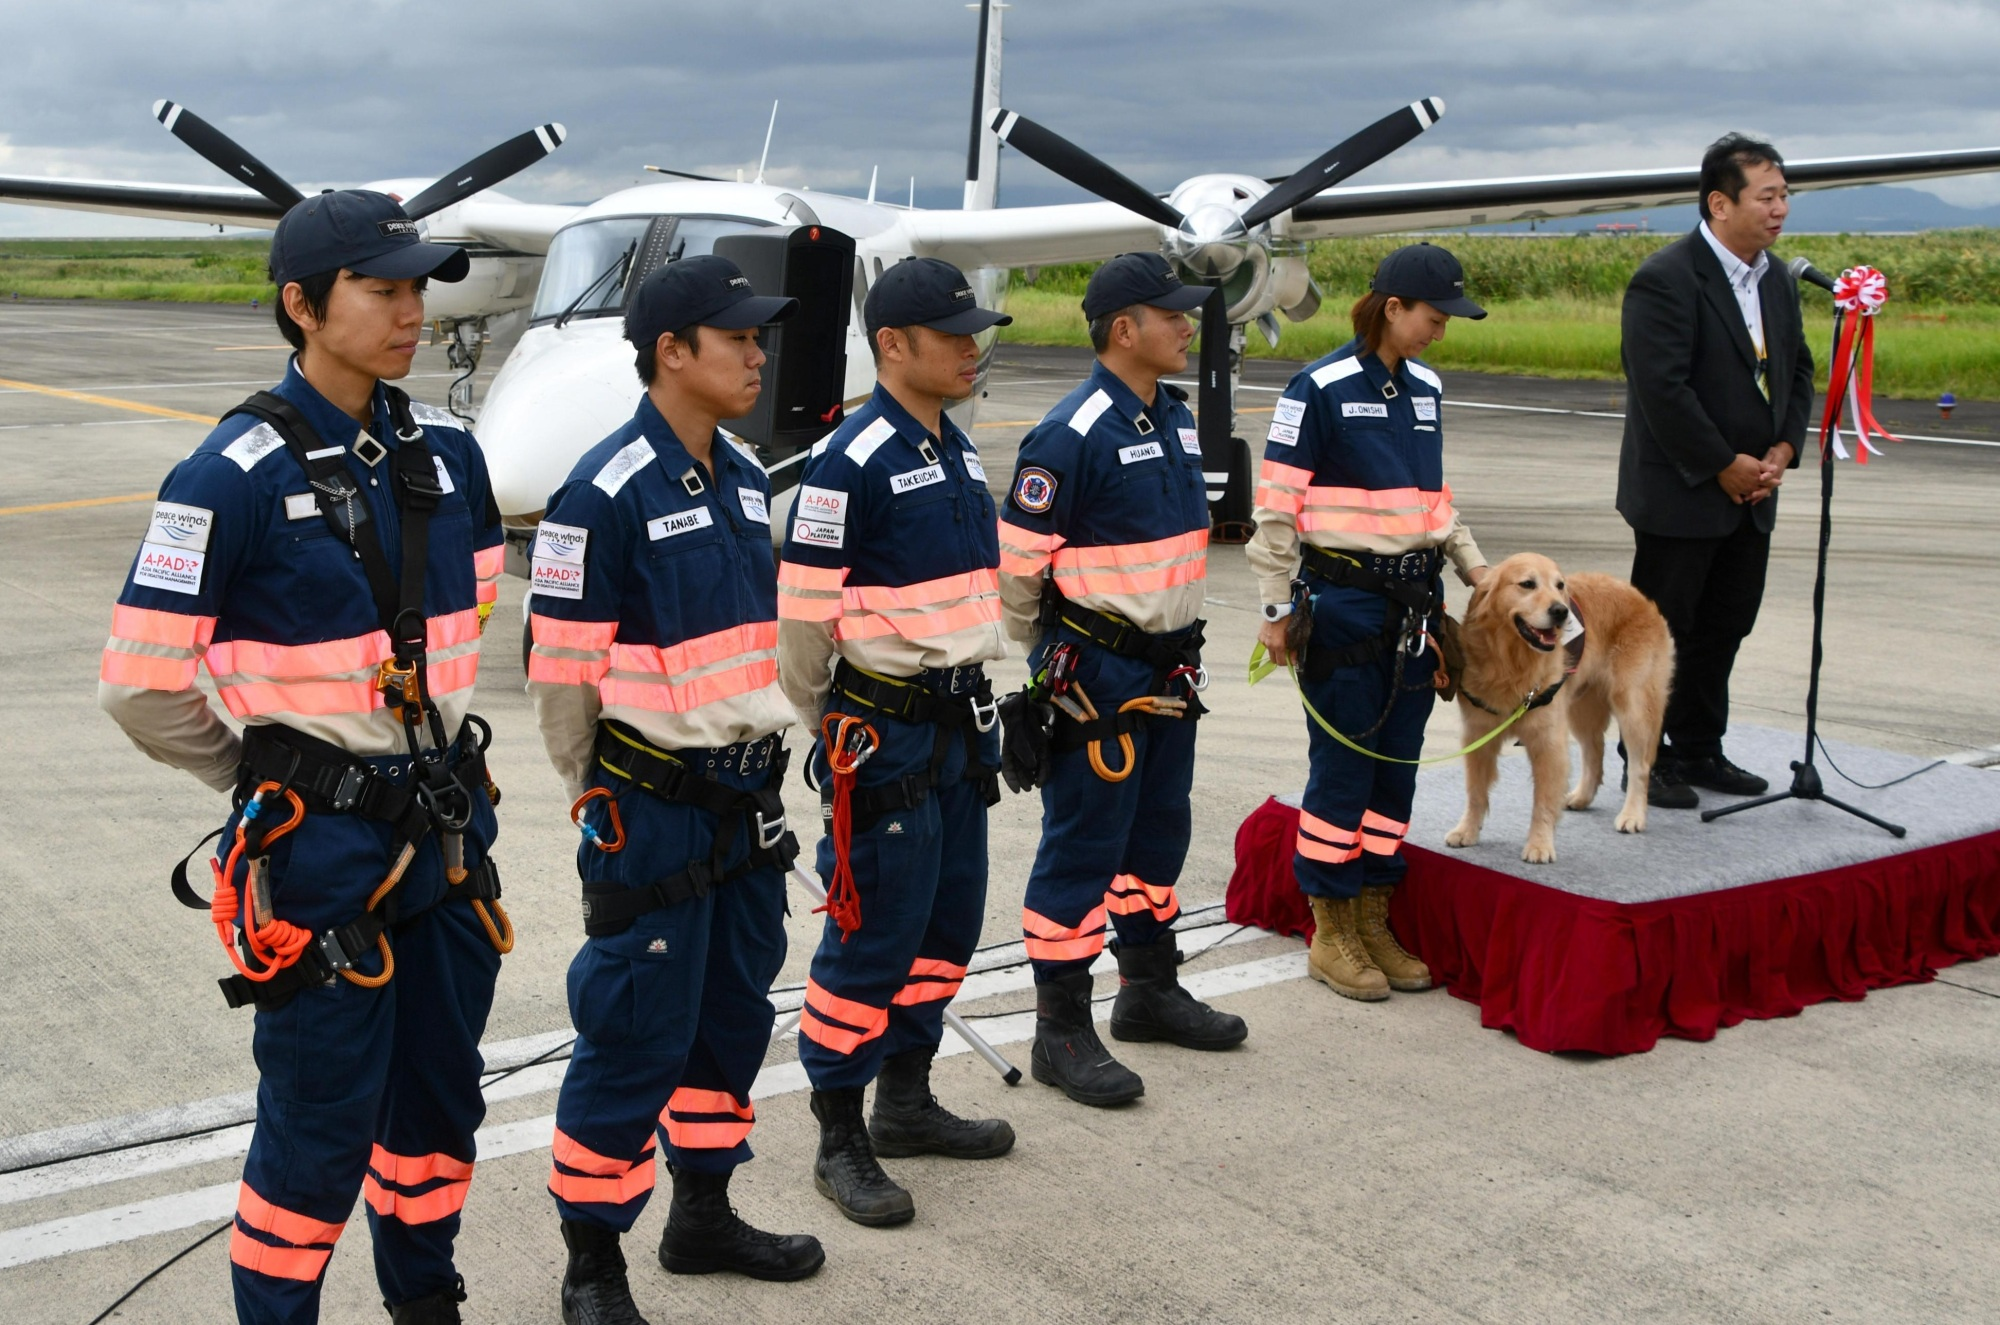 Members of a team of 'flying doctors,' which provides emergency relief in disaster zones, attend a ceremony at Saga airport on Thursday where a special aircraft was unveiled. | KYODO